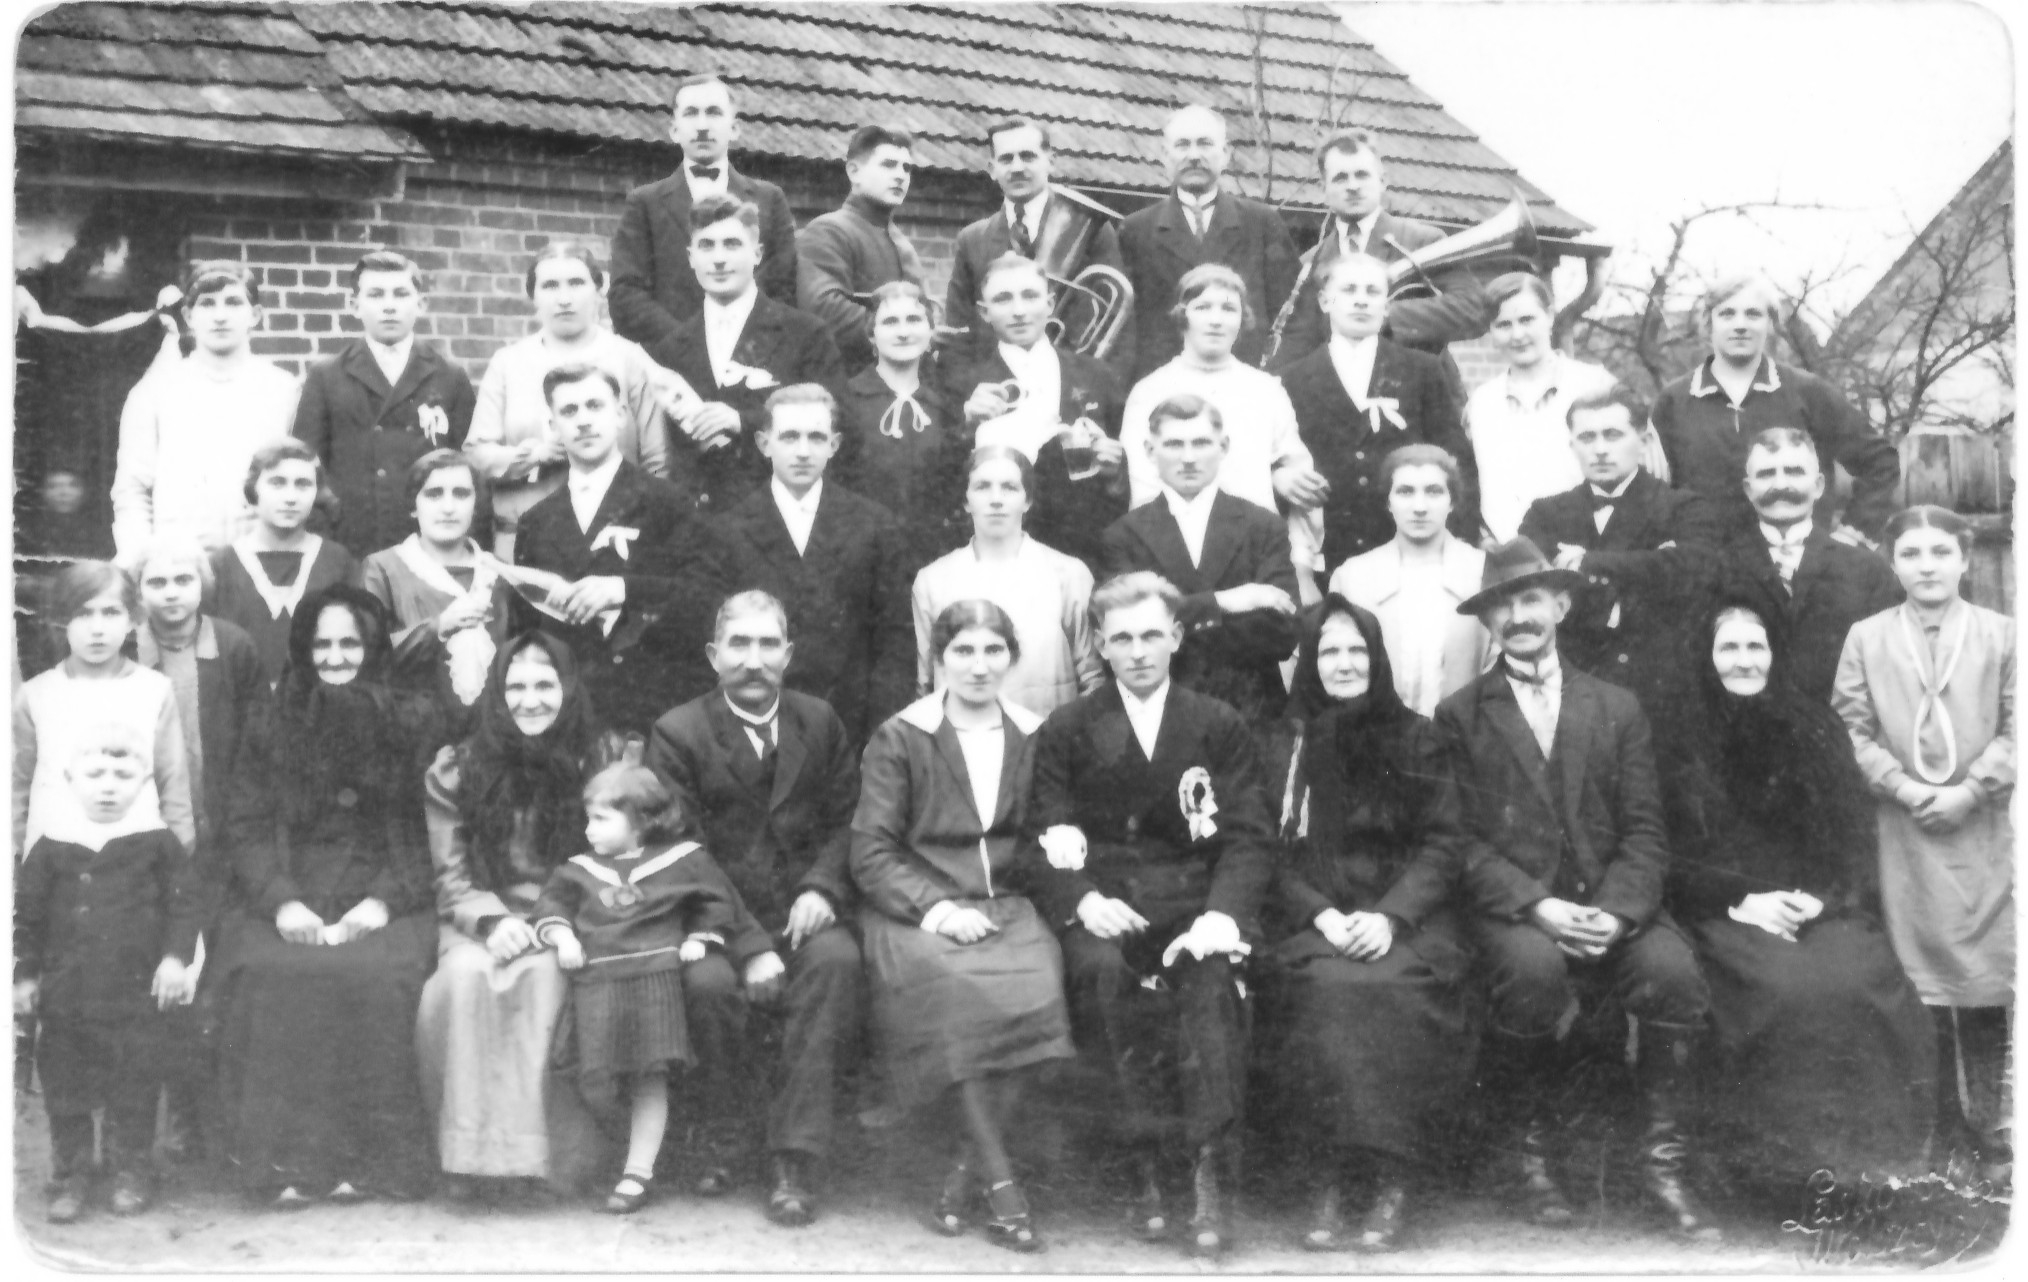 Photo taken in 1929 at a Utrajczak family wedding. In the front row left to right: Helen's sister Anna (wearing white dress), grandmother, mother, father, sister Maria (the bride), the groom, the groom's parents, the groom's grandmother, and Helen.